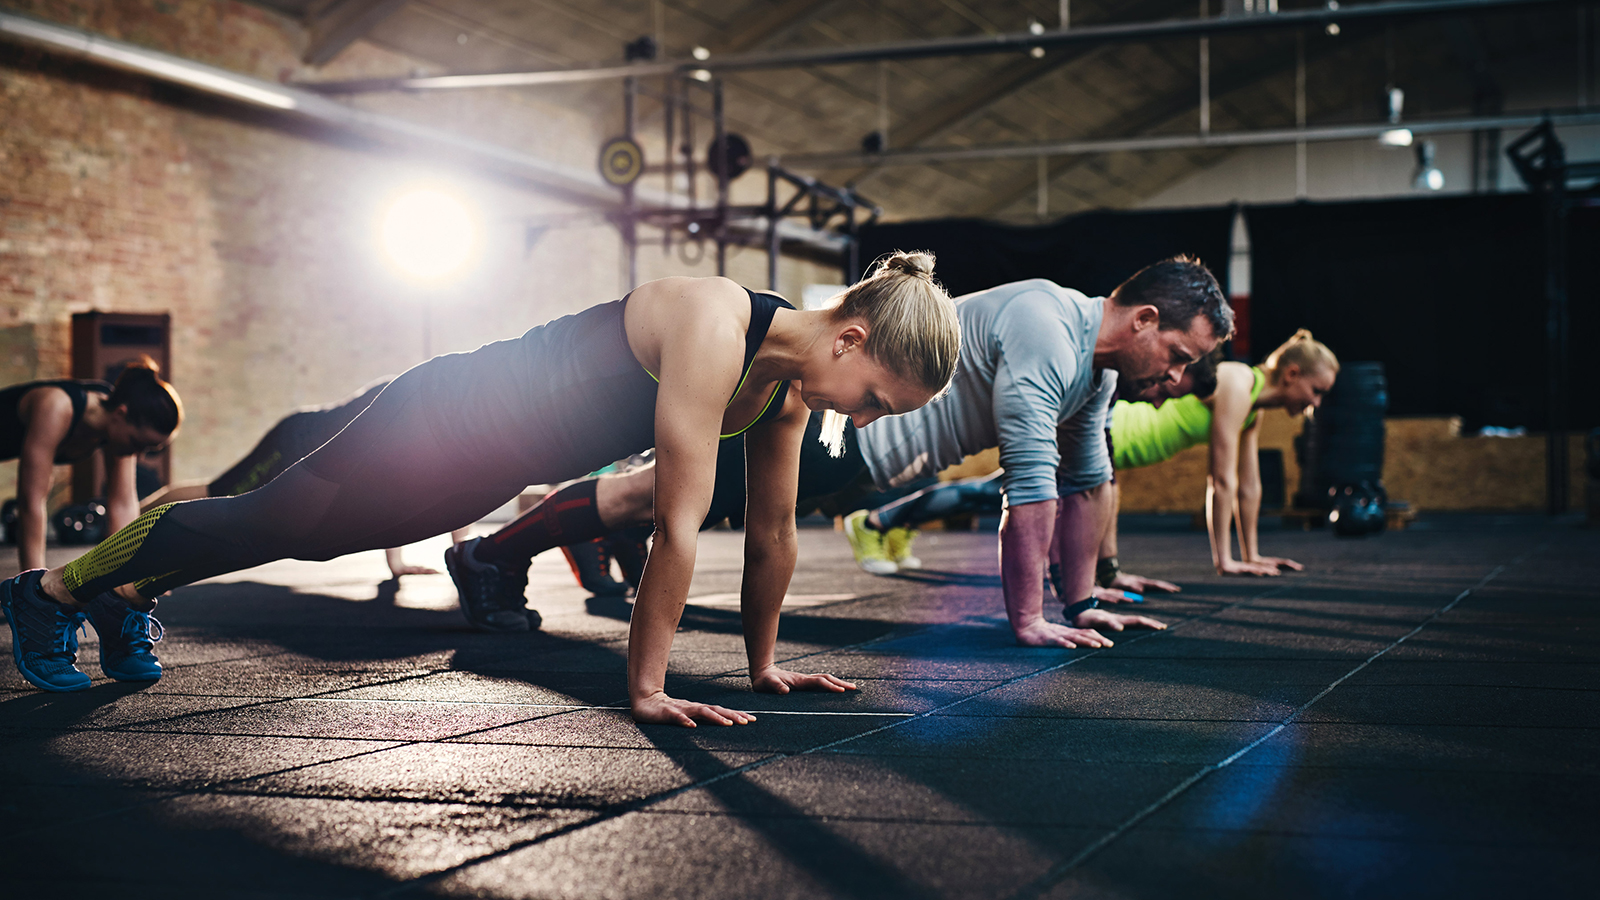 Sport-Fitness-Groupe-femme-iStock-680886042